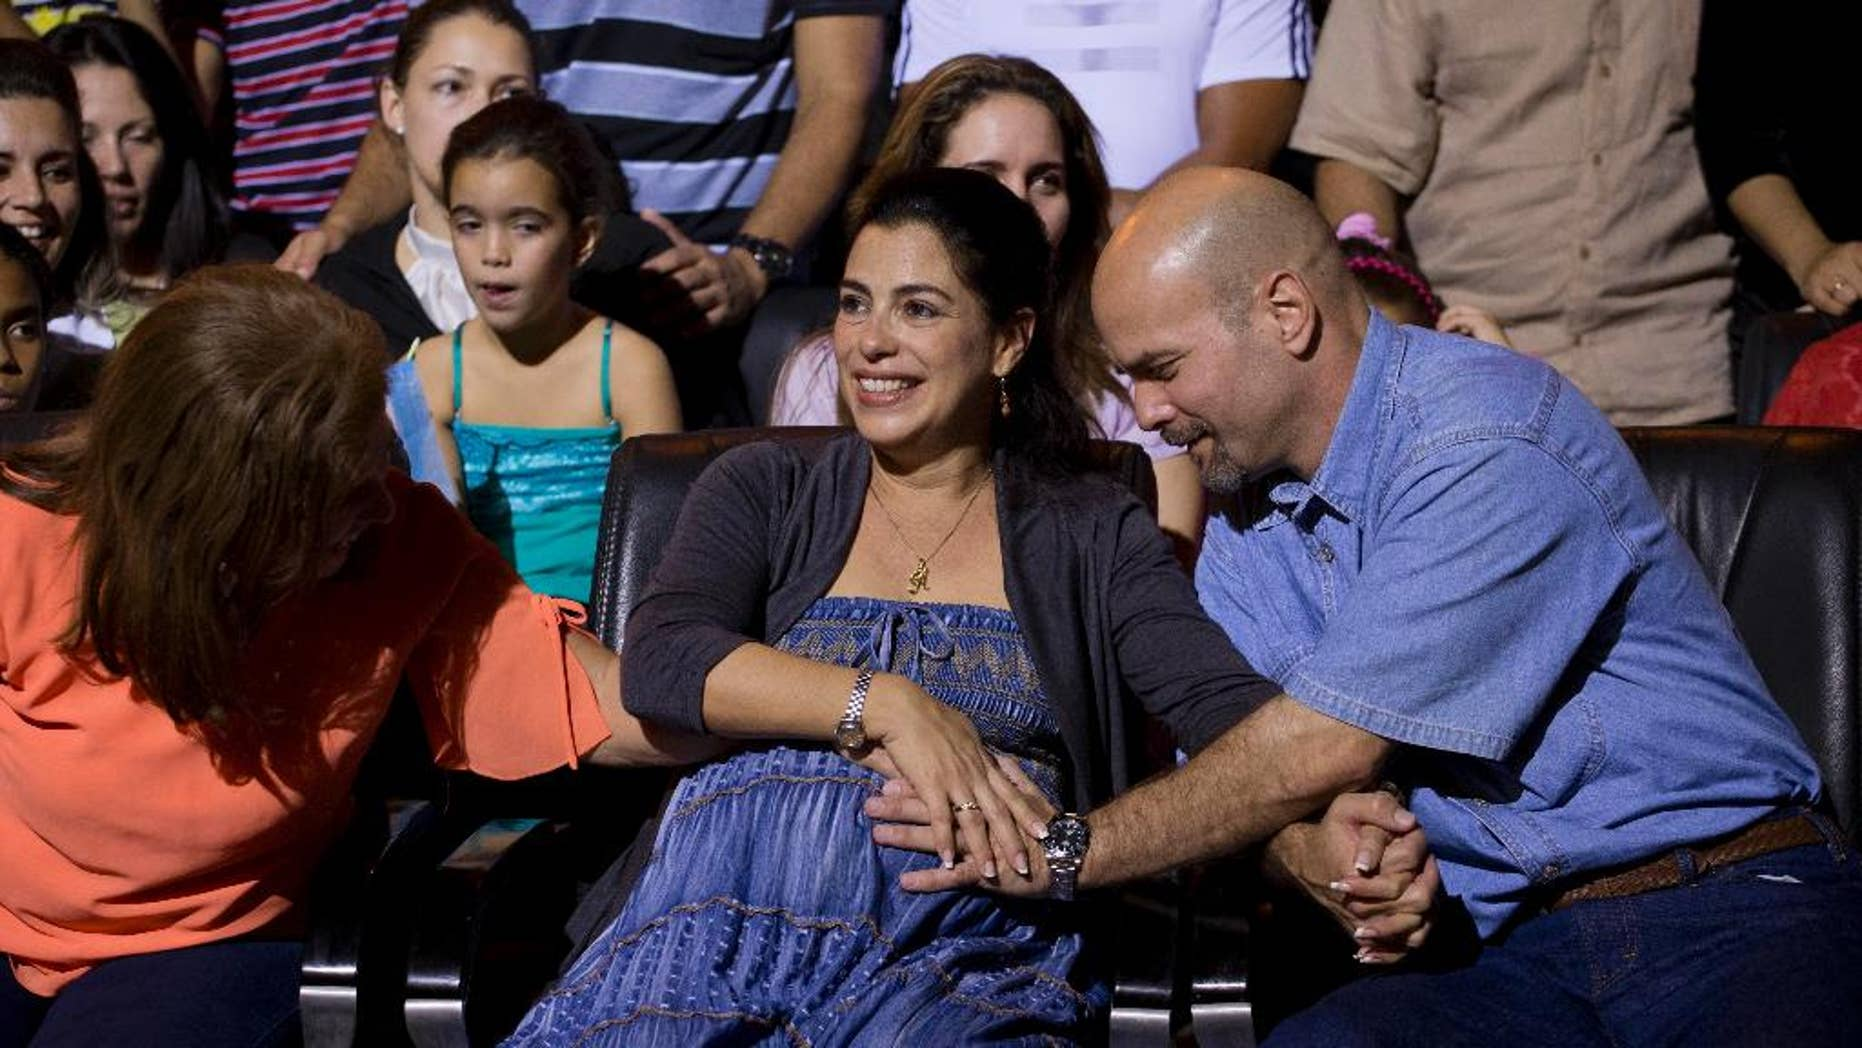 """FILE - In this Dec. 20, 2014 file photo, Gerardo Hernandez, right, member of """"The Cuban Five,"""" touches the belly of his pregnant wife Adriana Perez, during a concert, in Havana, Cuba. The wife of the Cuban intelligence agent freed by the United States in December, gave birth to a girl, Tuesday, Jan. 6, 2015, after a pregnancy made possible by negotiations to improve ties between the two countries. U.S. officials helped facilitate a process of artificial insemination for Hernandez and his wife. (AP Photo/Ramon Espinosa, File)"""